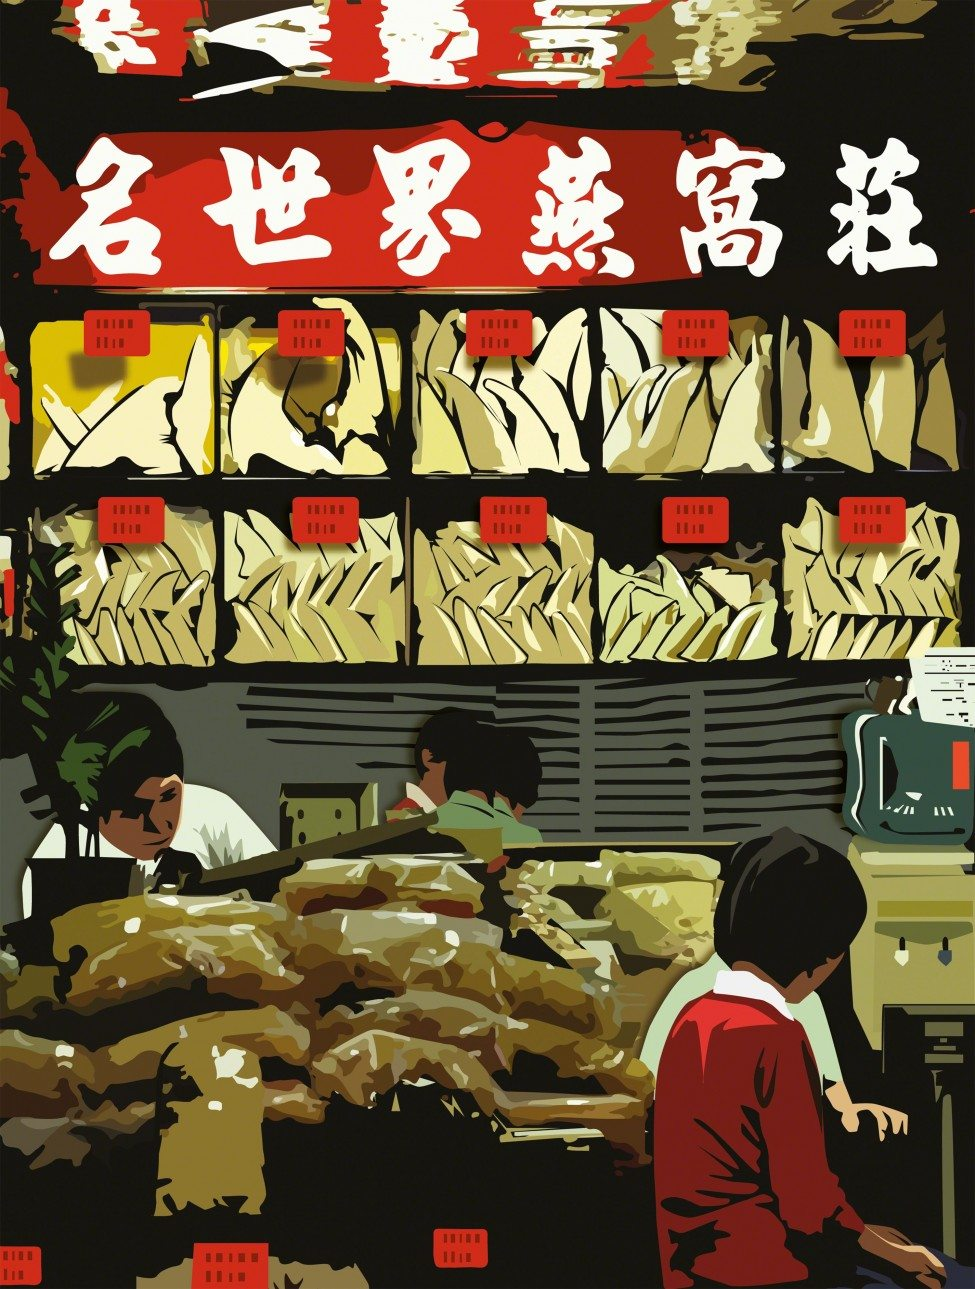 Shoppers at a market in Hong Kong do not lack for available dried shark fin.<br /> Photo by Thomas P. Peschak | Artwork by Alessandro Bonora